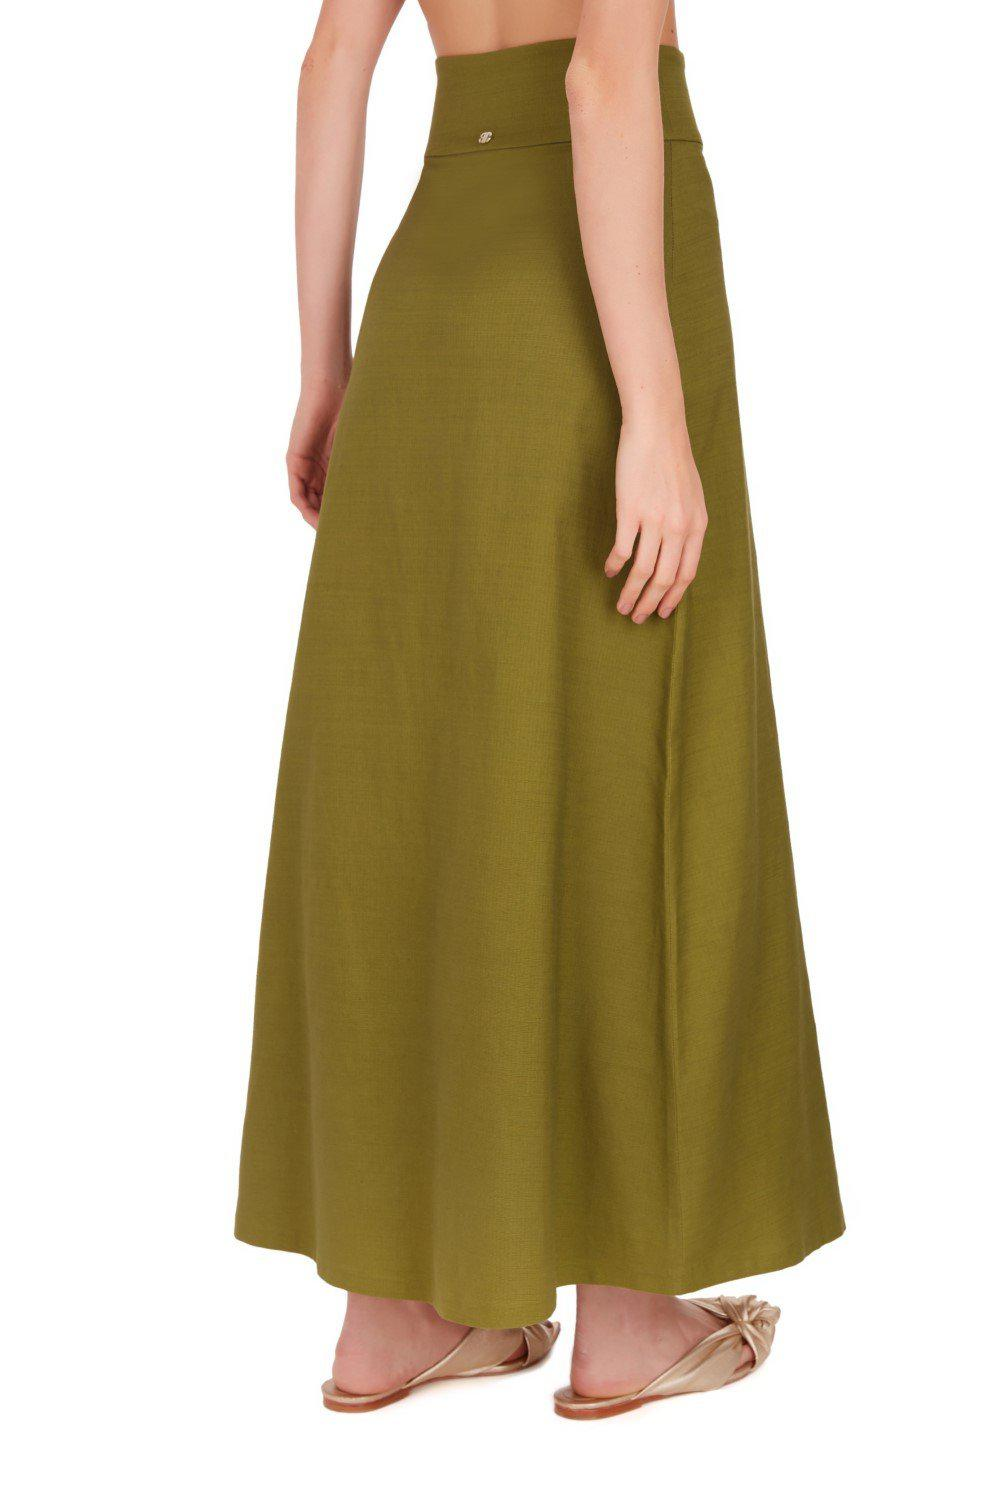 Safari Solid Long Skirt with Buttons 2